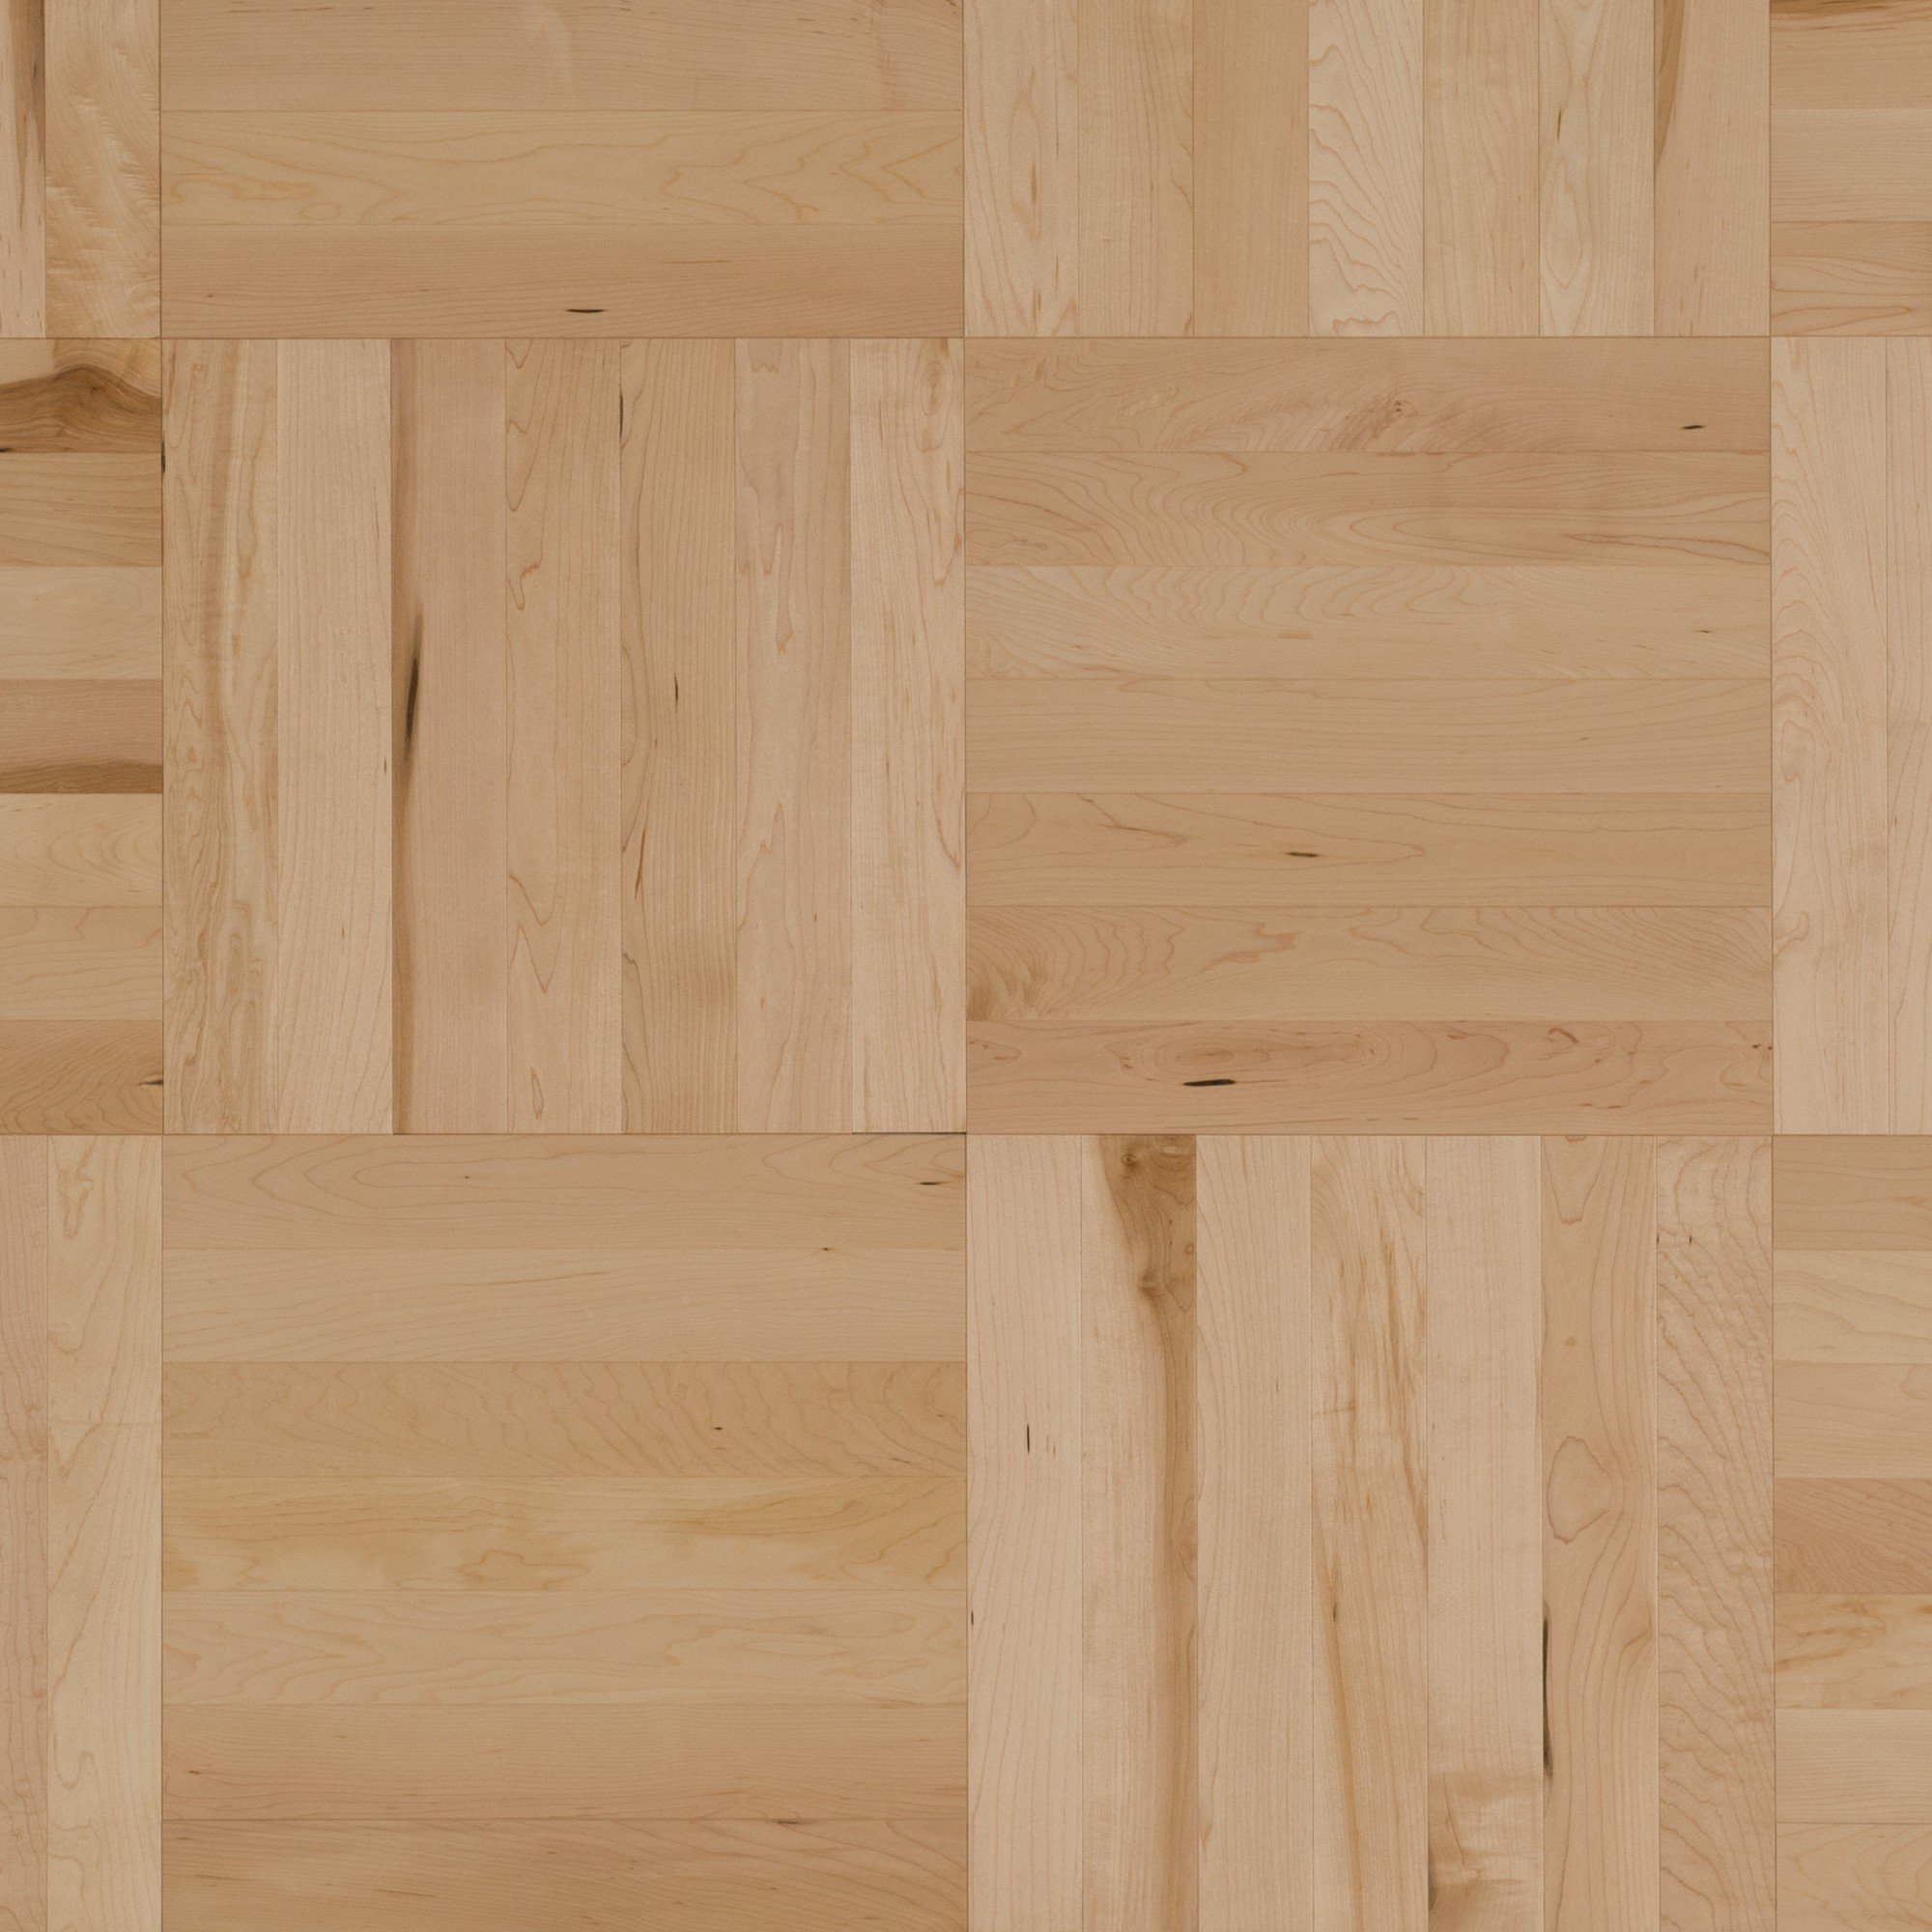 Herringbone maple exclusive mirage hardwood floors for Mirage wood floors